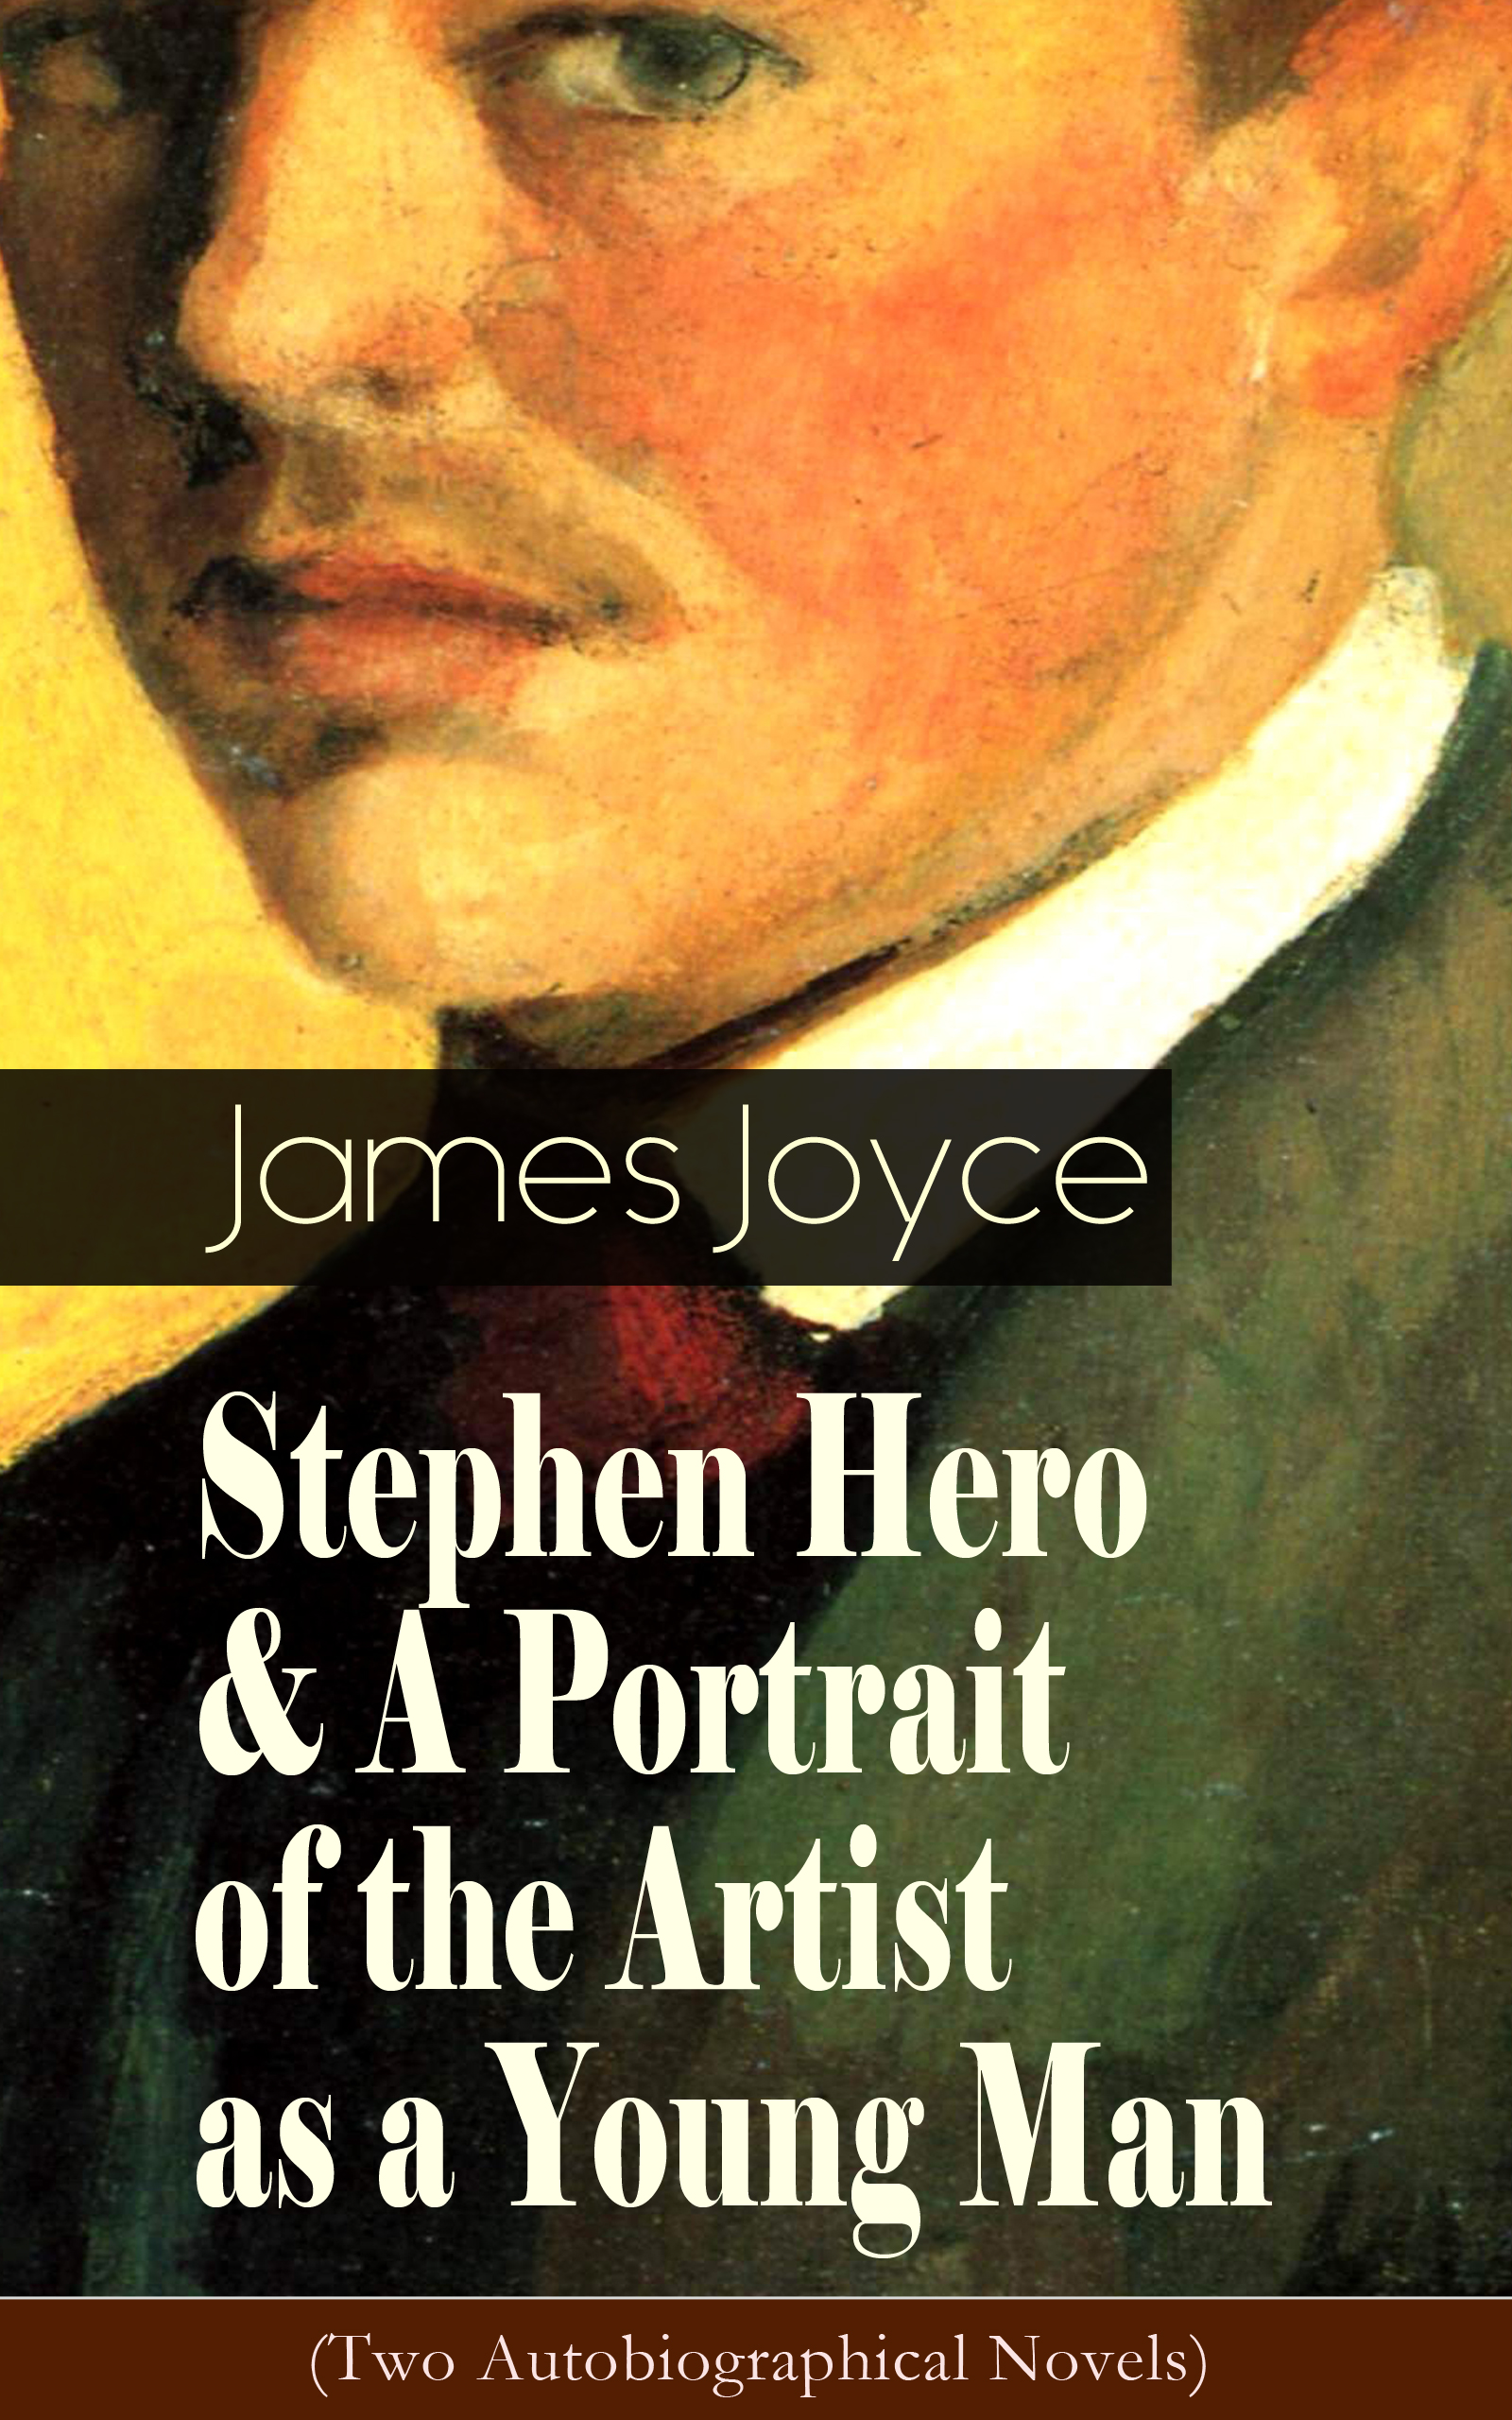 James Joyce Stephen Hero & A Portrait of the Artist as a Young Man (Two Autobiographical Novels) james joyce a portrait of the artist as a young man